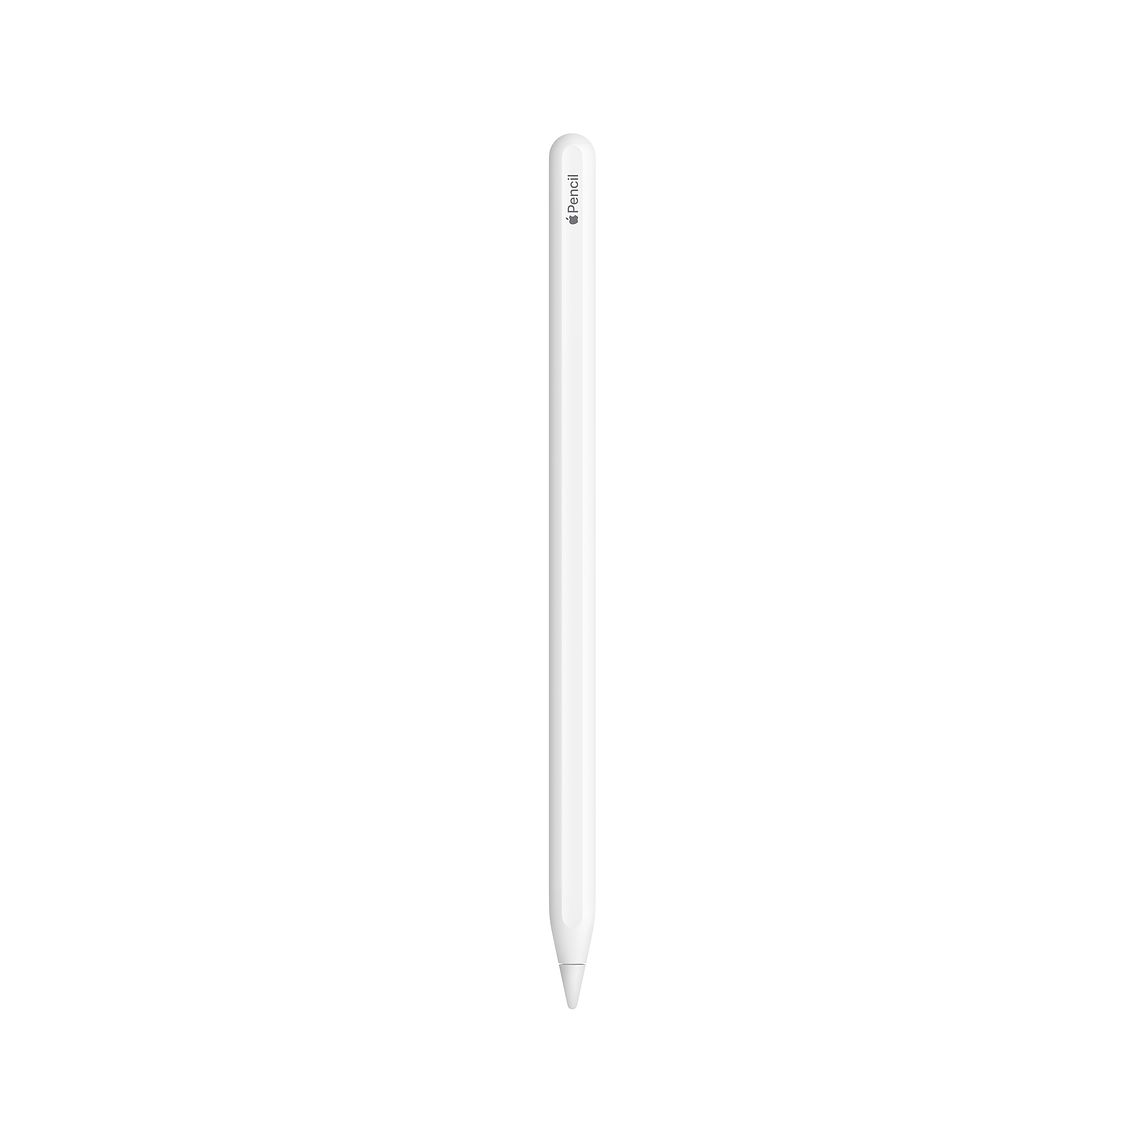 Apple Pencil (2nd Generation) at Small Dog Electronics